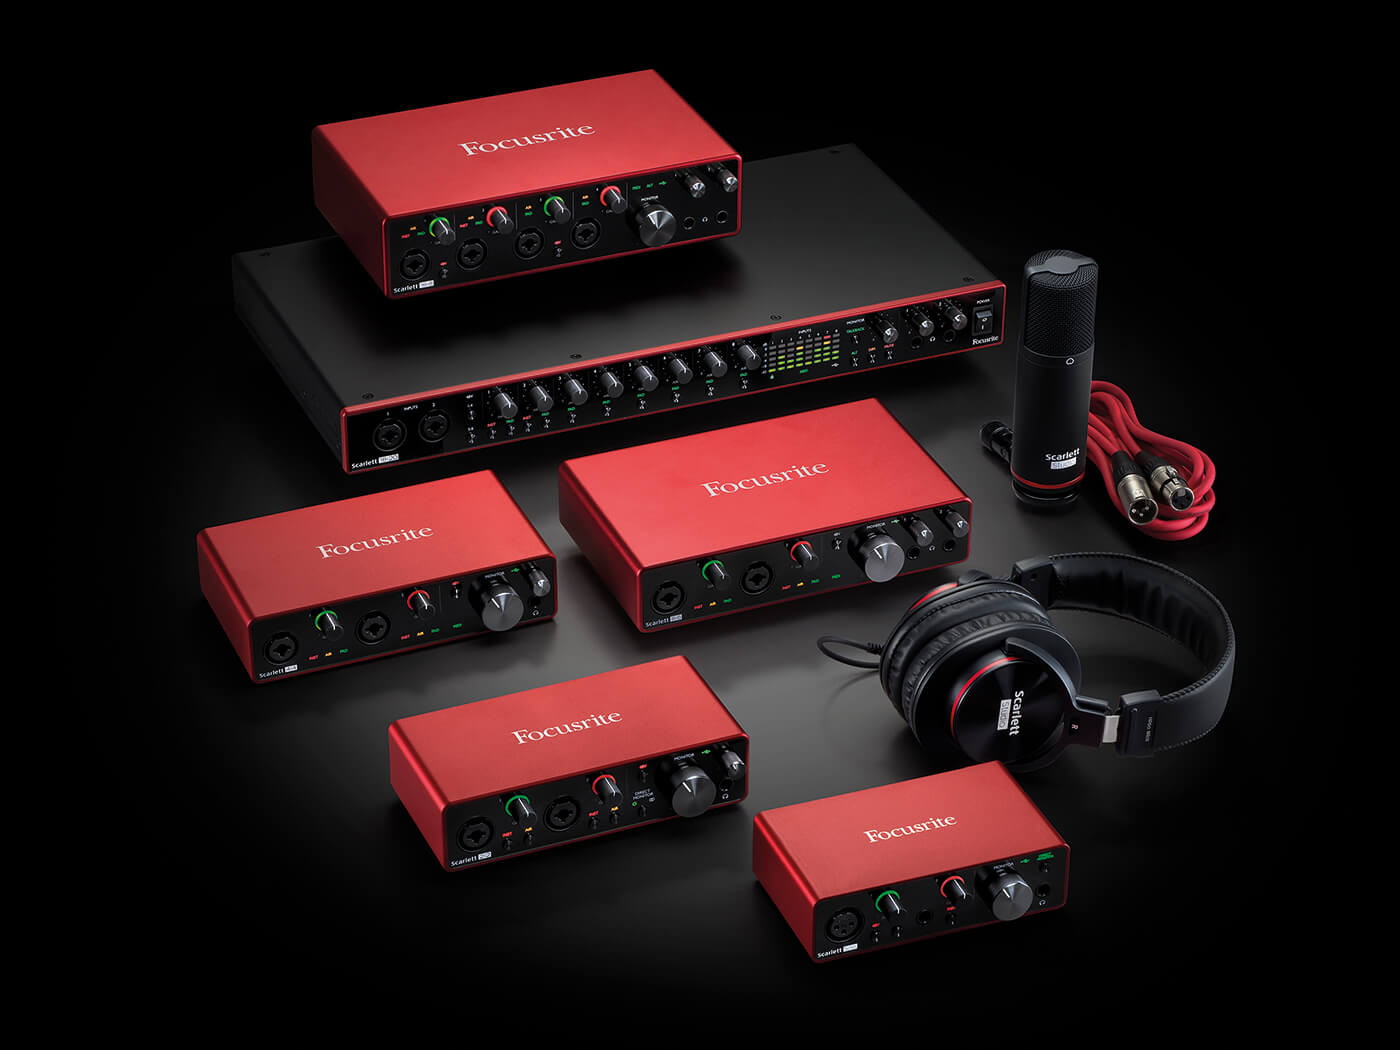 focusrite-scarlett-3rd-gen-review-01@1400x1050.jpg